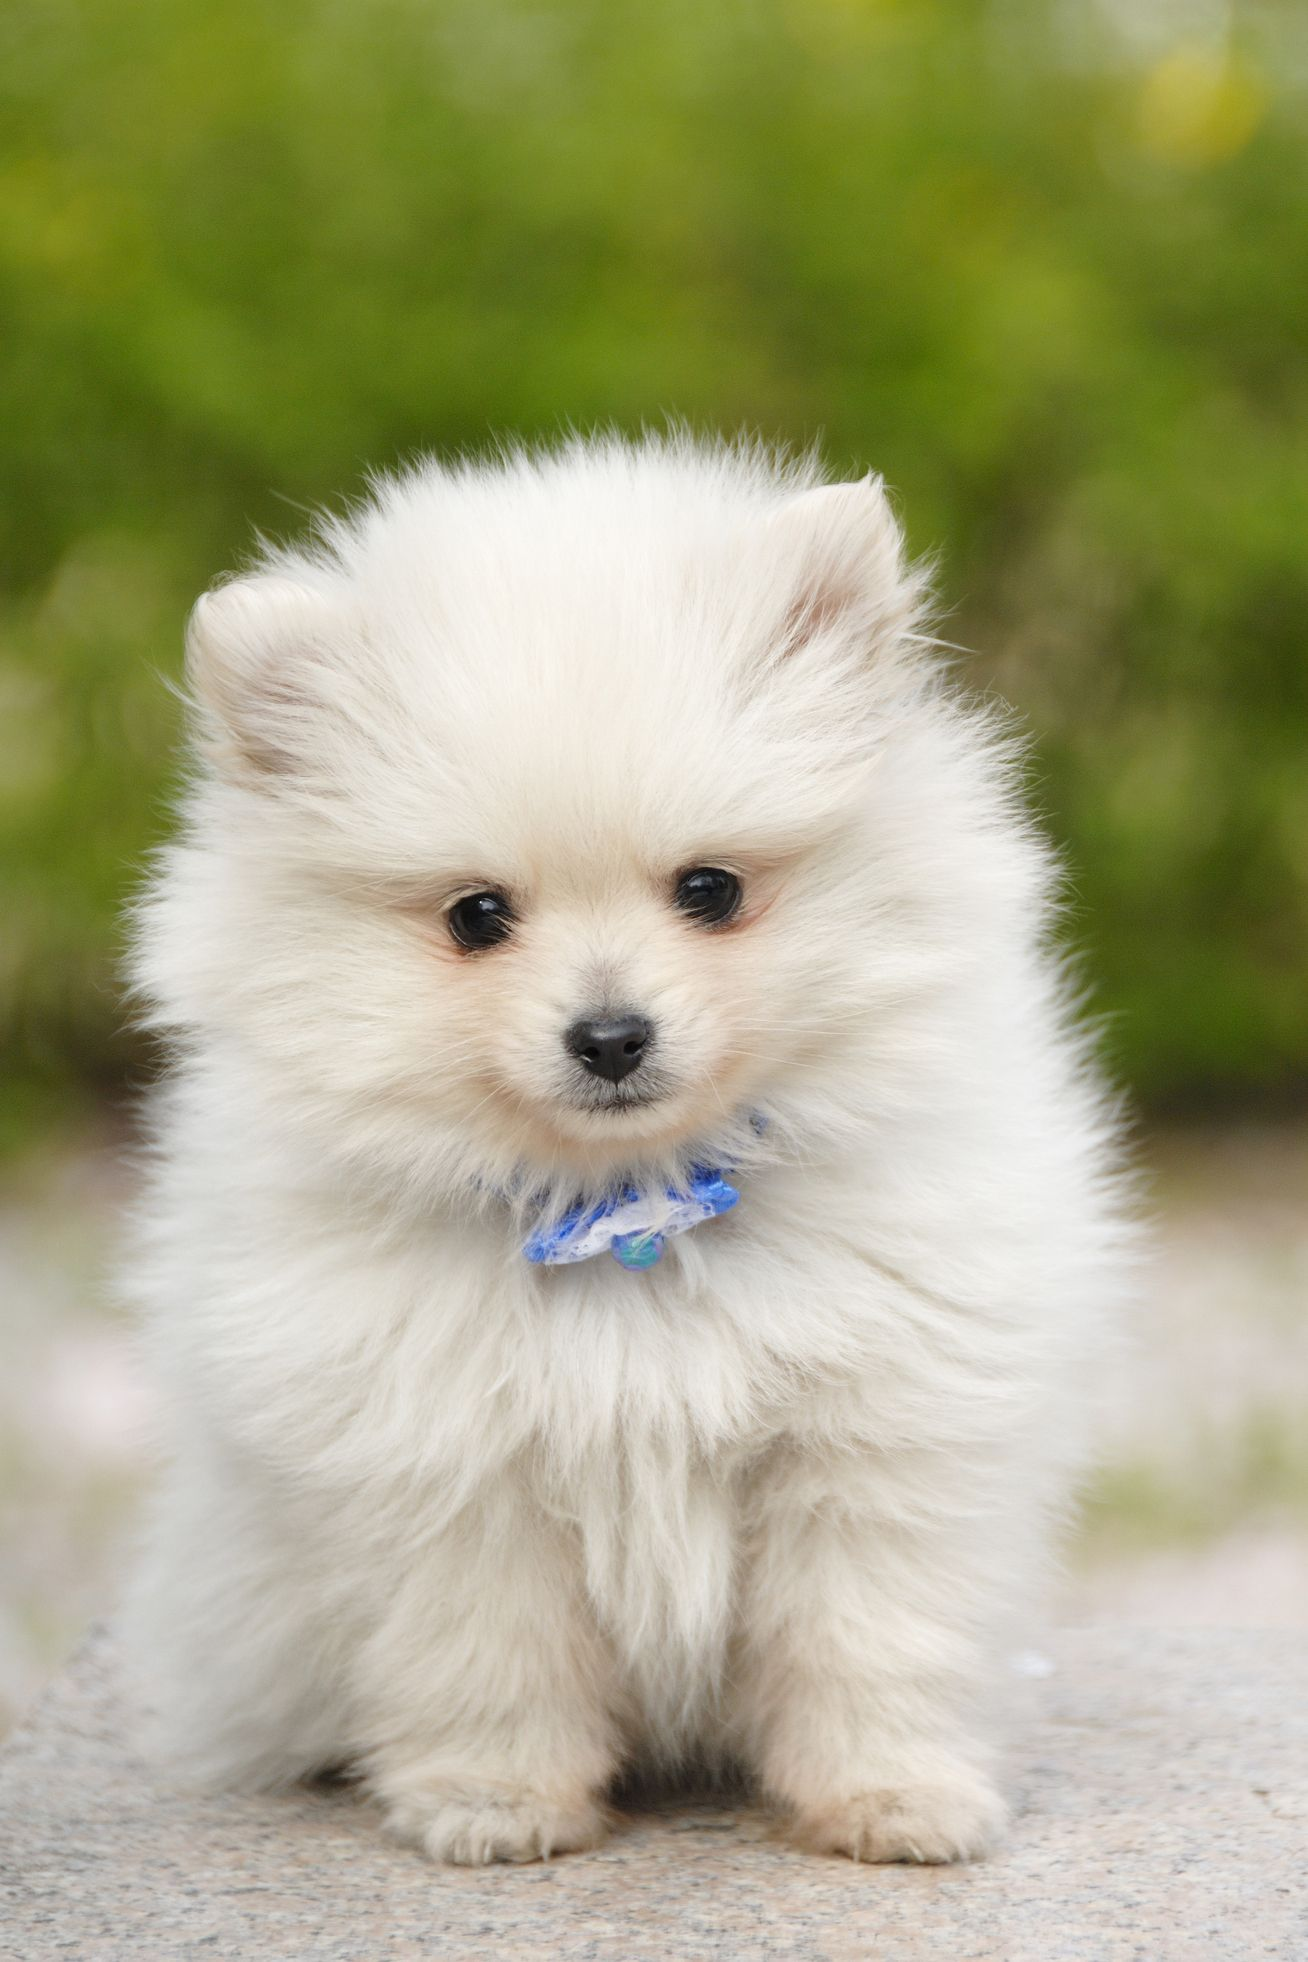 14 Small White Dog Breeds To Add To Your Family Asap Dog Breeds